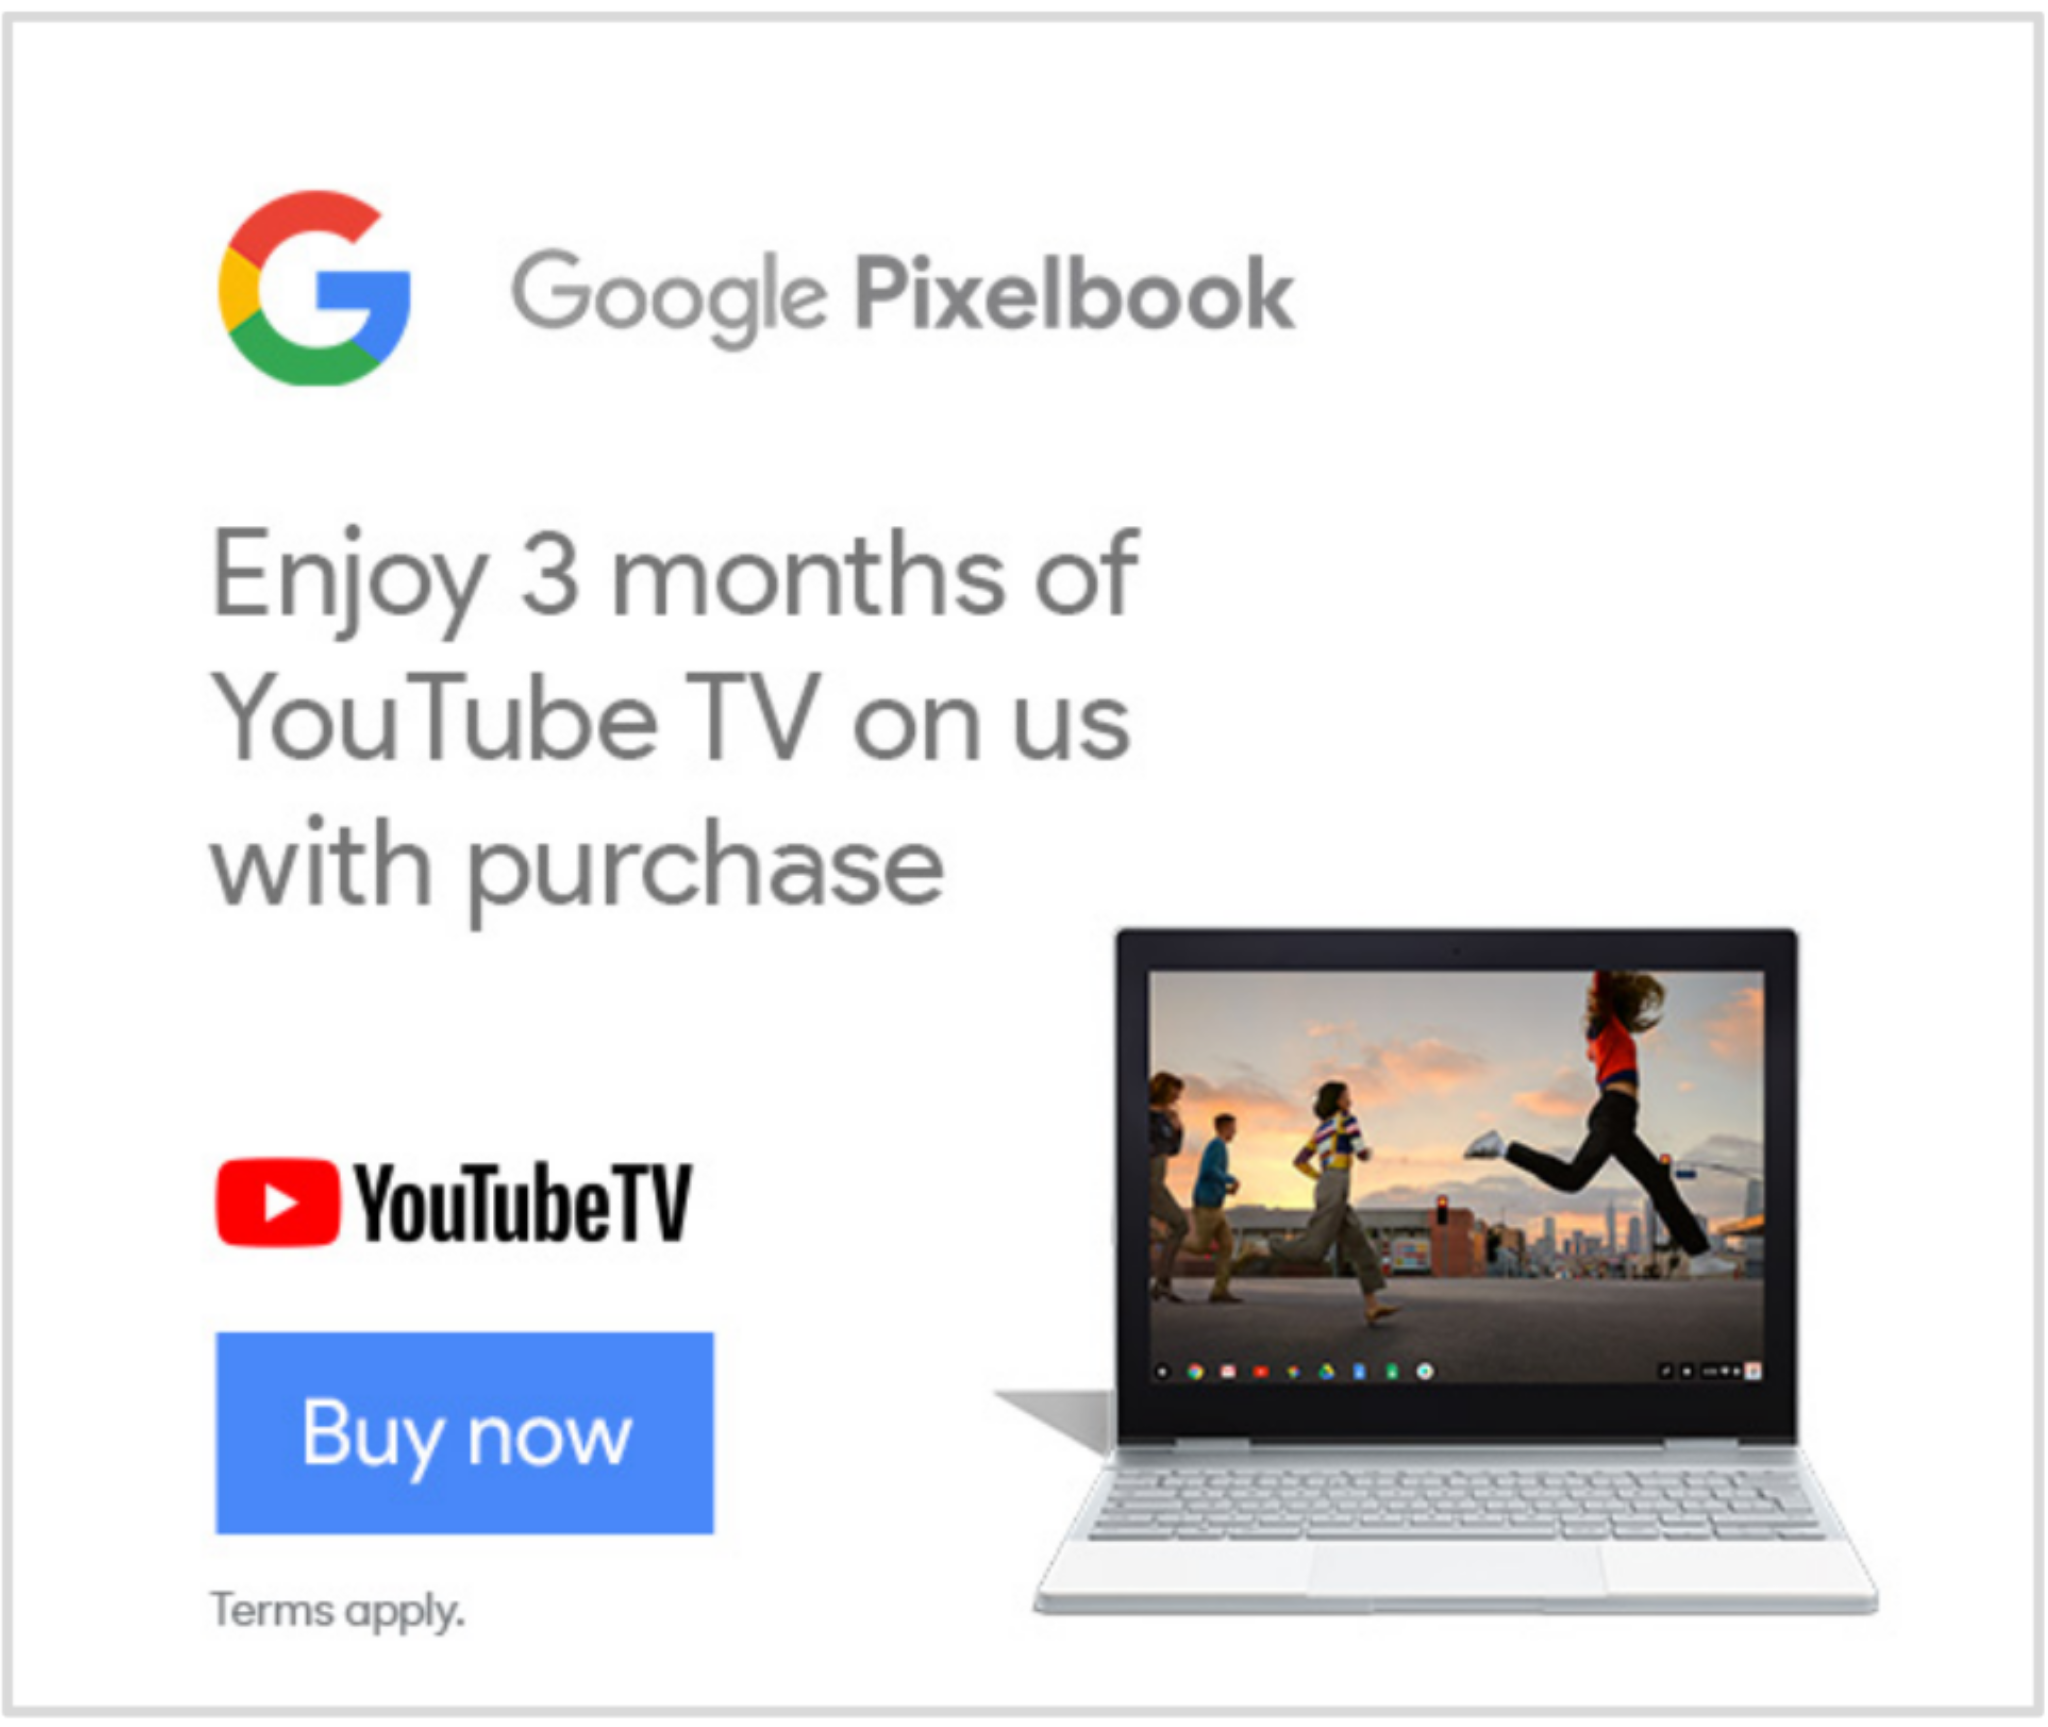 Pixelbook, Pixel Slate, & YouTube TV - Integrated Marketing & Partnership LeadScope of Work: Included project, partnership and creative management across teams, launch event, press, digital marketing and TV, events and retail.Year: 2018